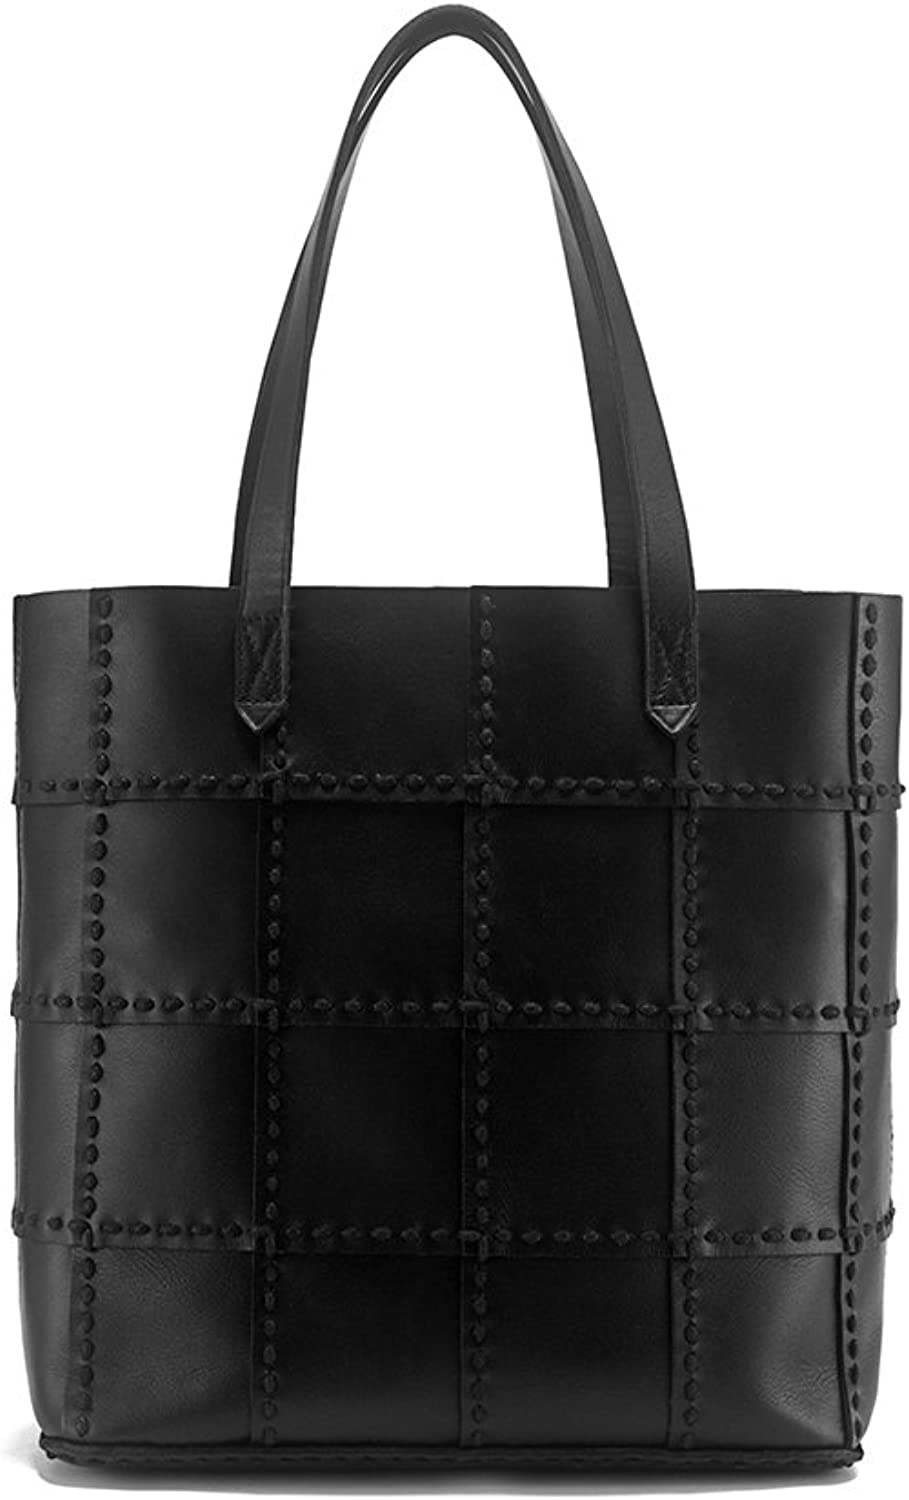 BRANCHEAU YEUNG Big Shopping Bag Genuine Leather Tote Bag Casual Handbag With Strap